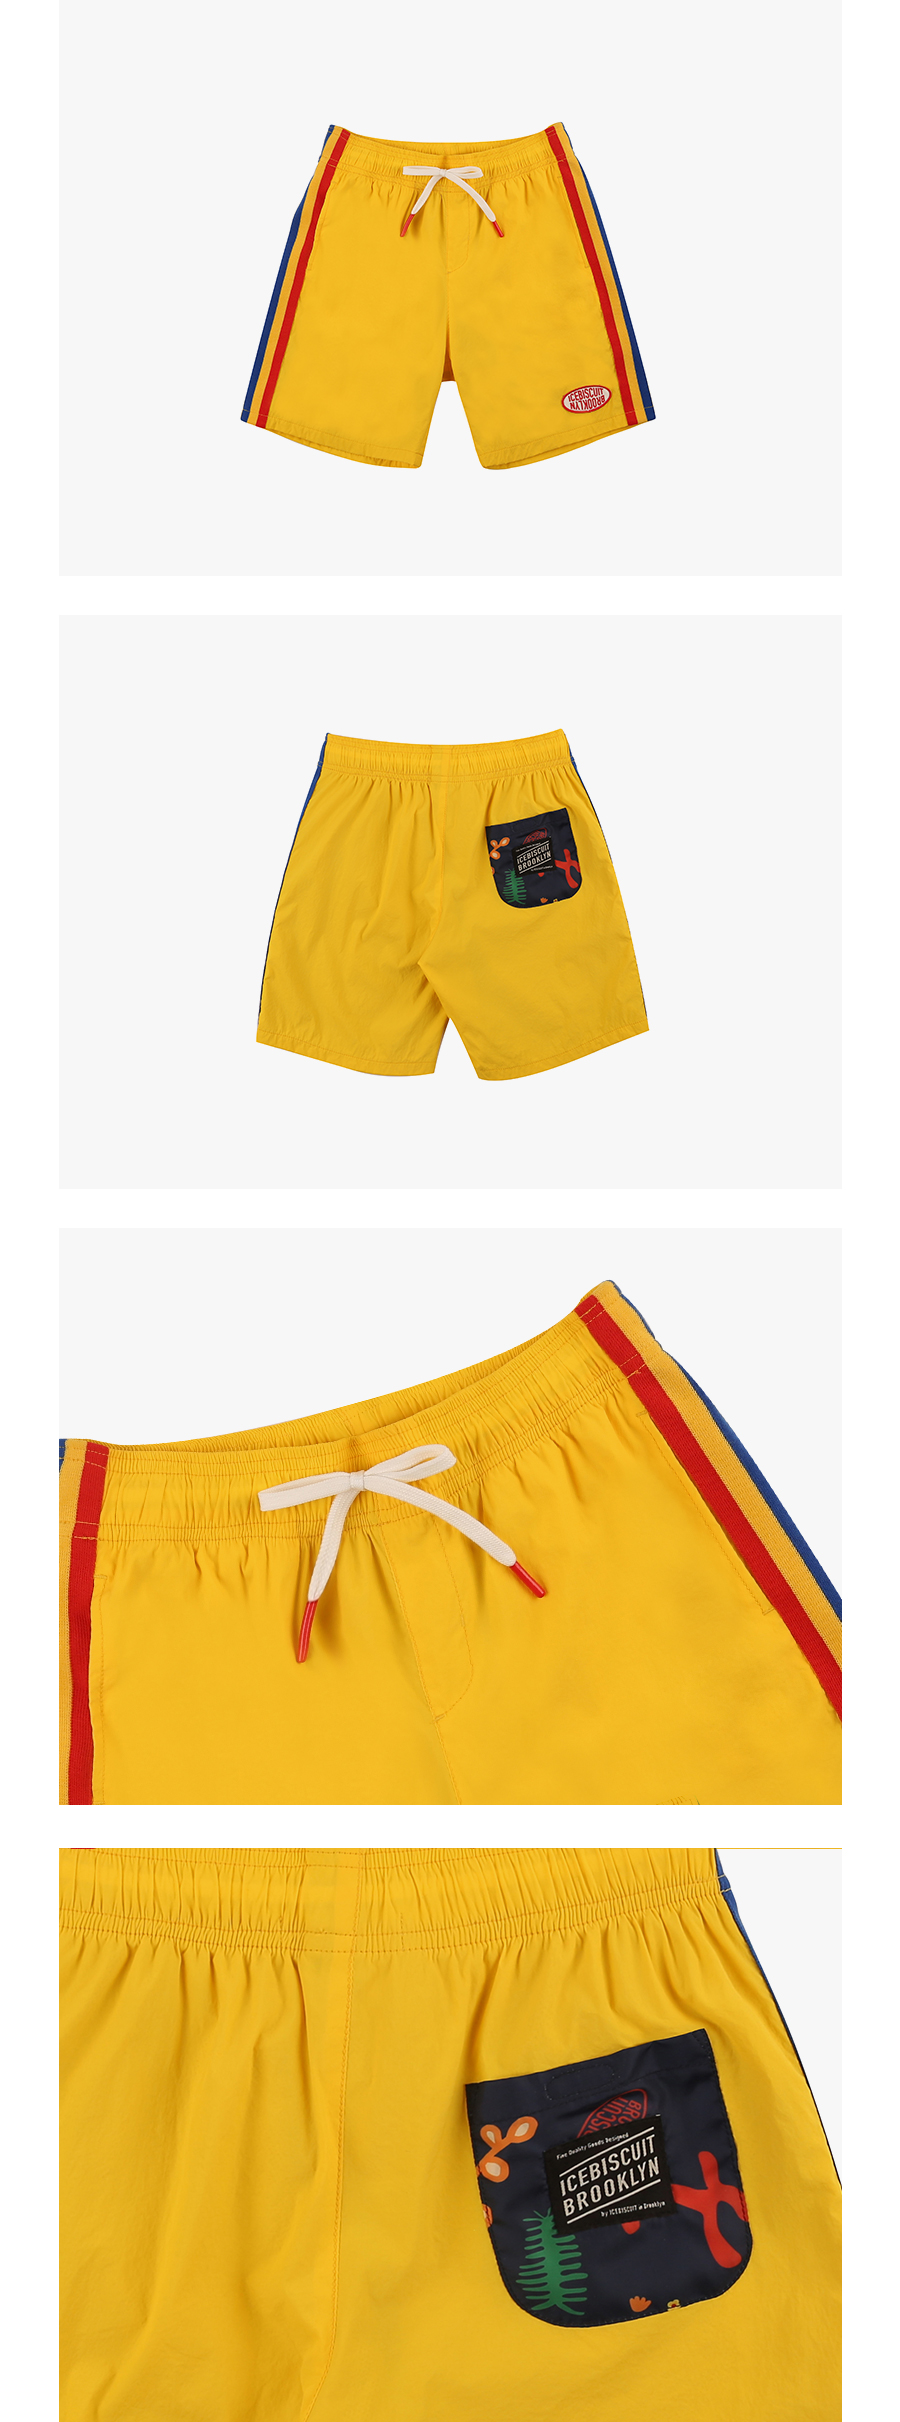 Yellow color block shorts 상세 이미지